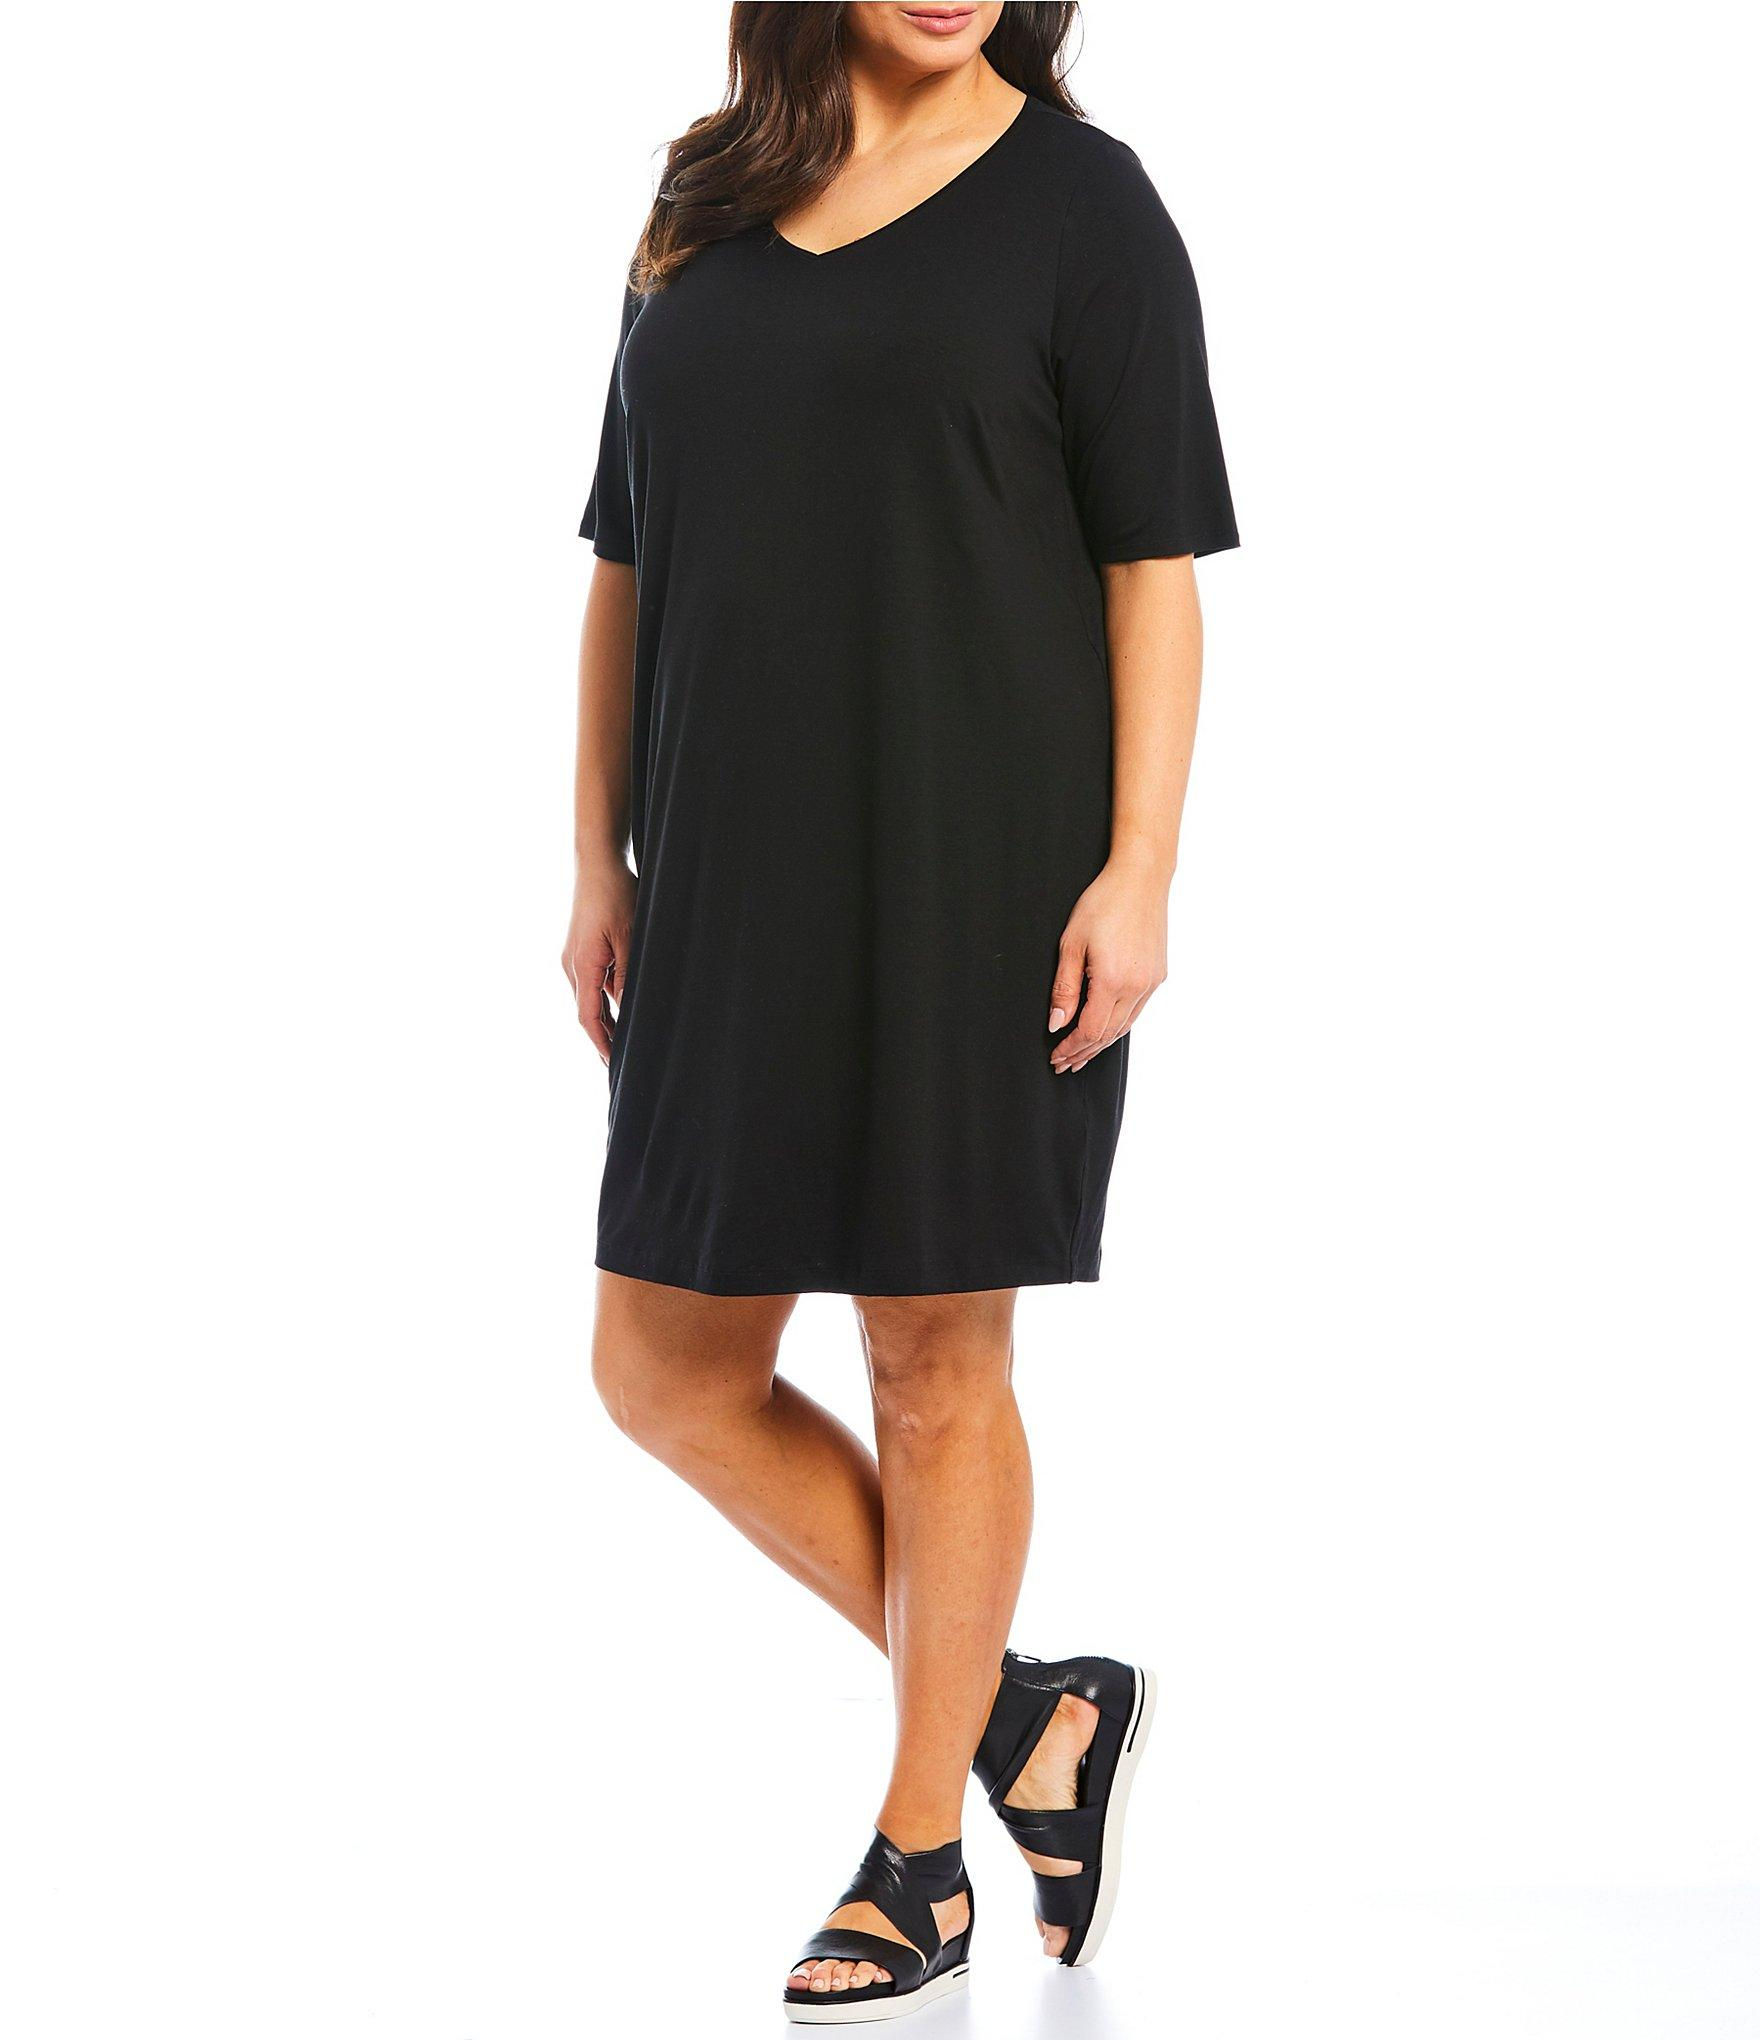 31343a193eb Lyst - Eileen Fisher Plus Size V-neck Elbow Sleeve Shift Dress in Black